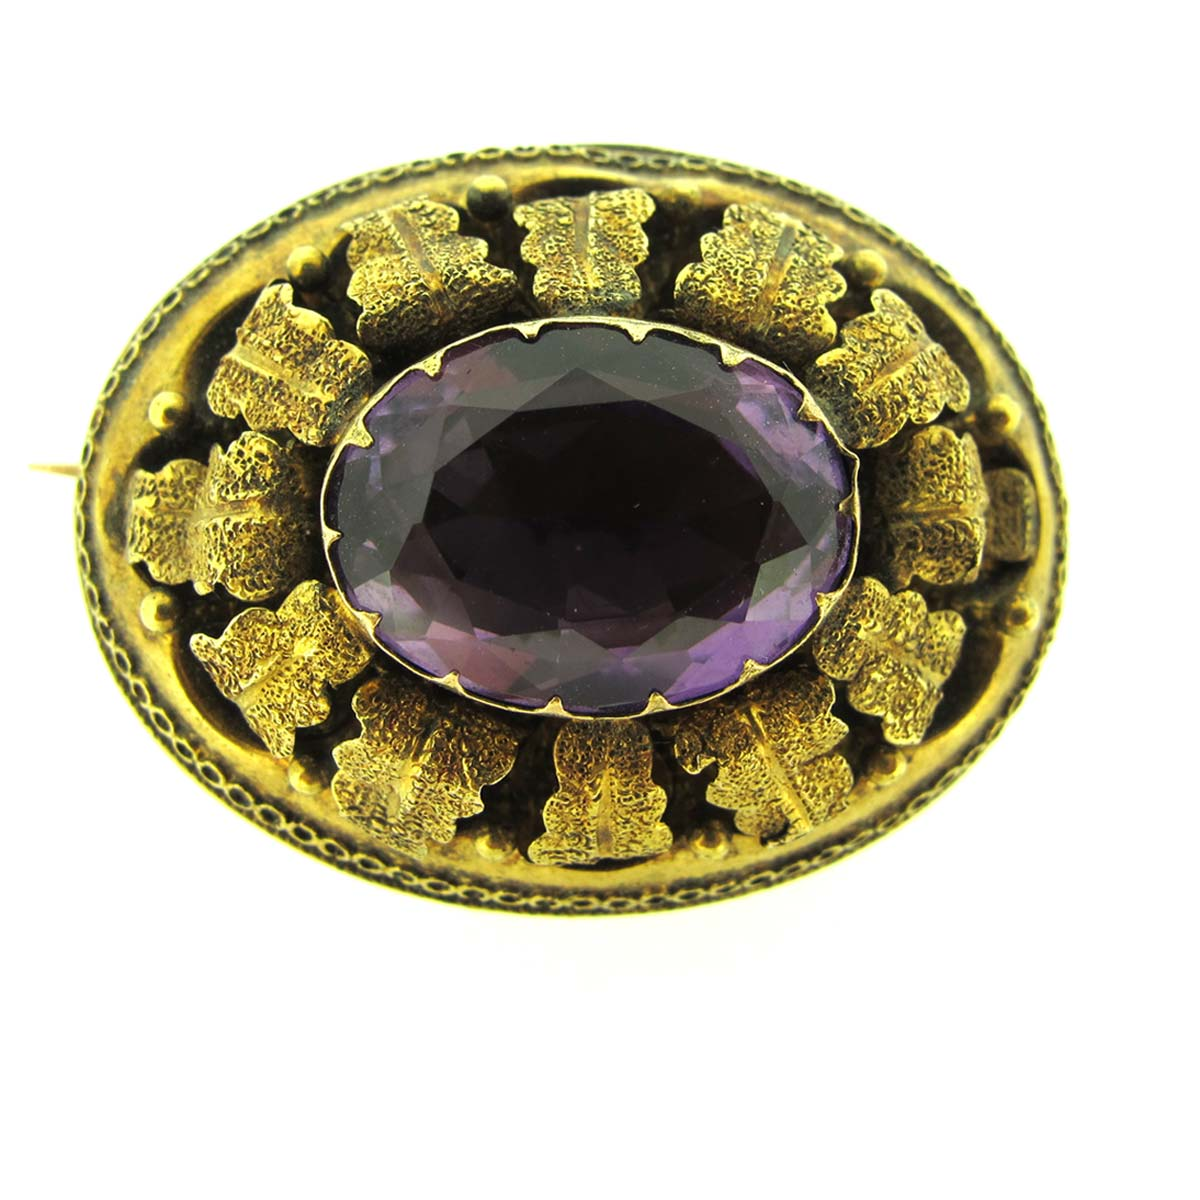 Antique gold & amethyst brooch